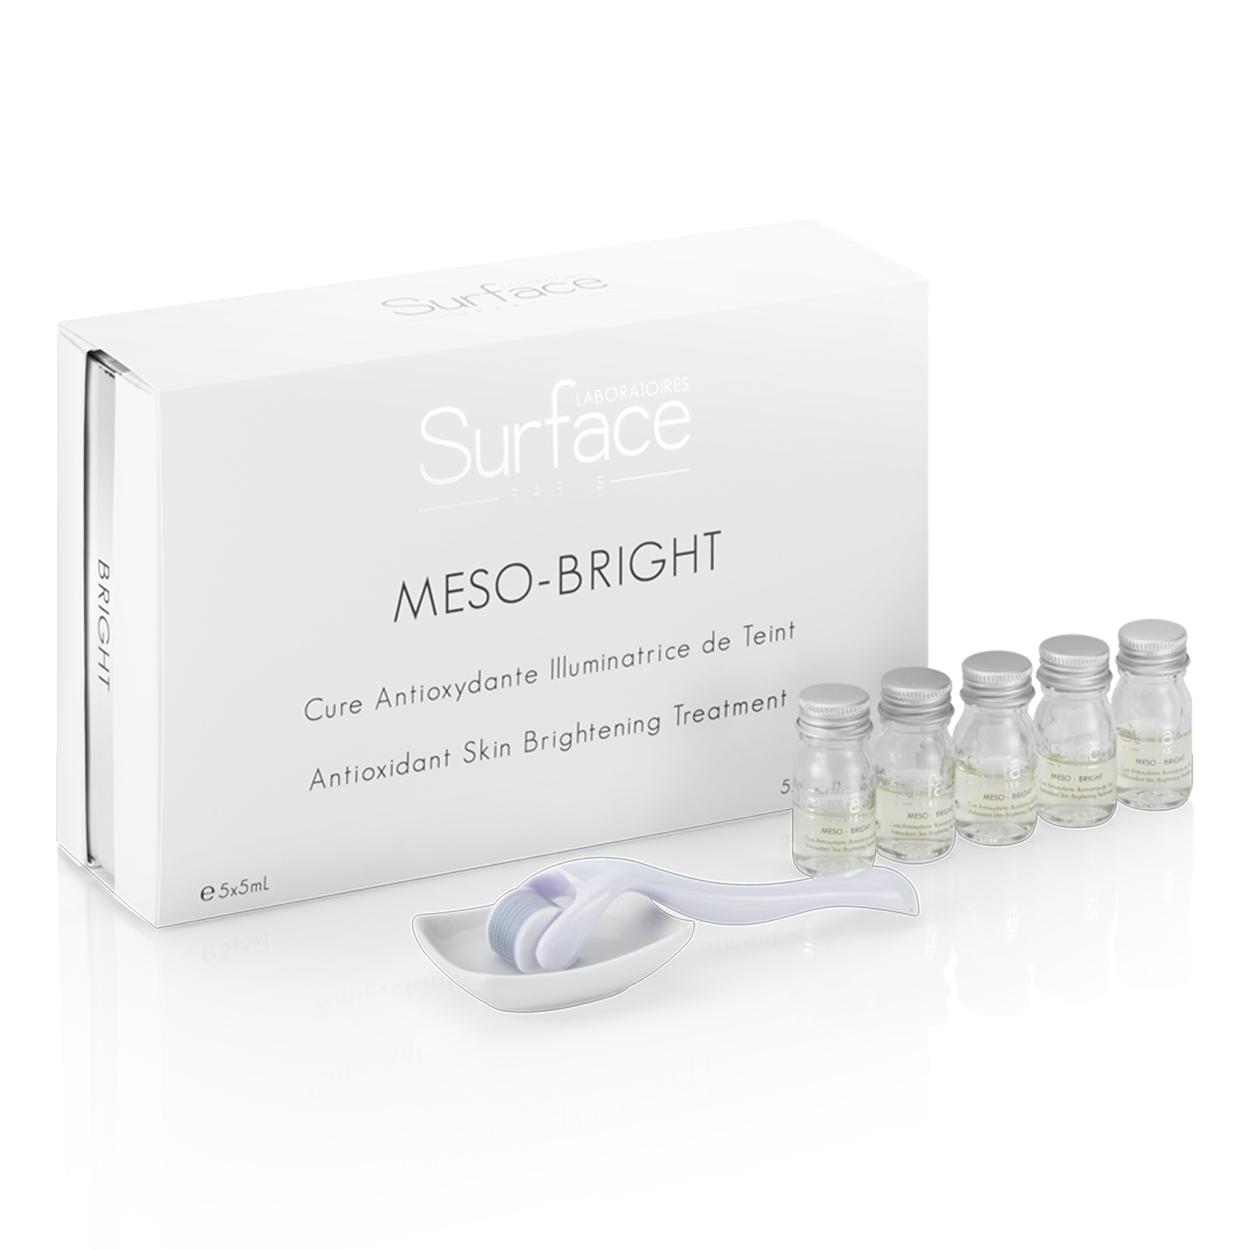 At Home Mesotherapy - MESO-BRIGHT by Laboratoires Surface-Paris